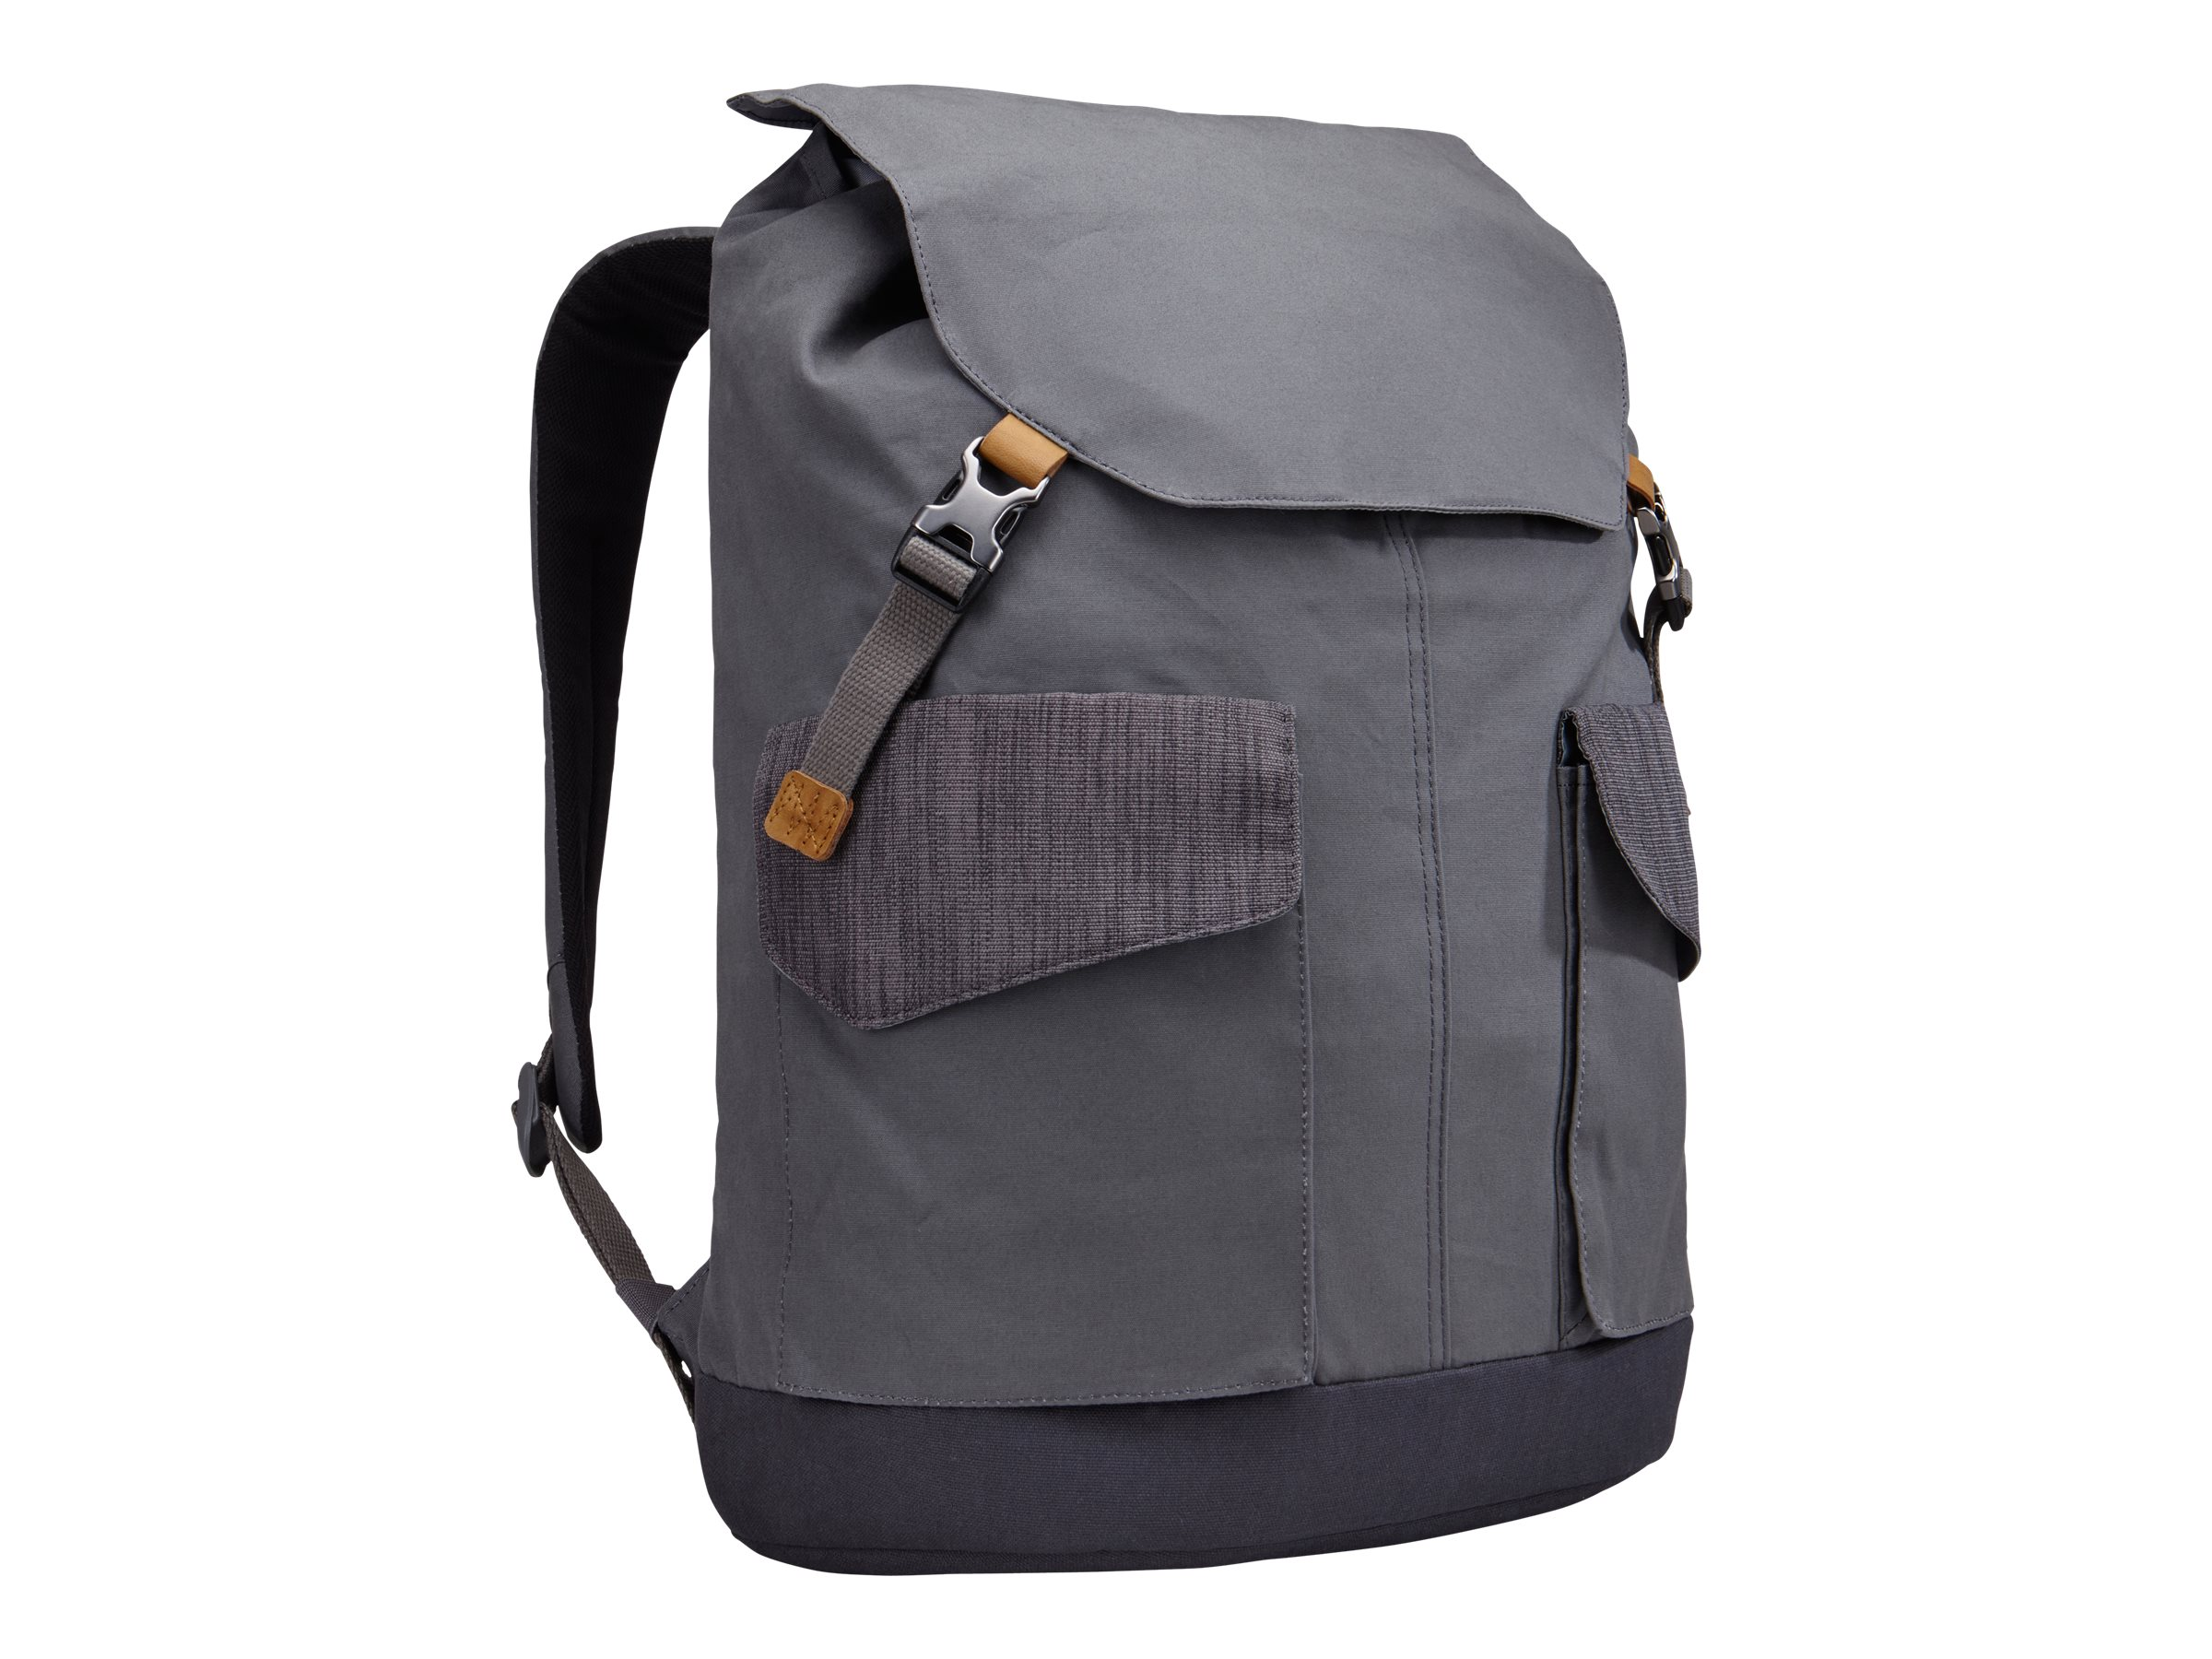 Case Logic LoDo Large Backpack, Graphite, LODP115GRAPHITE, 30640164, Carrying Cases - Notebook